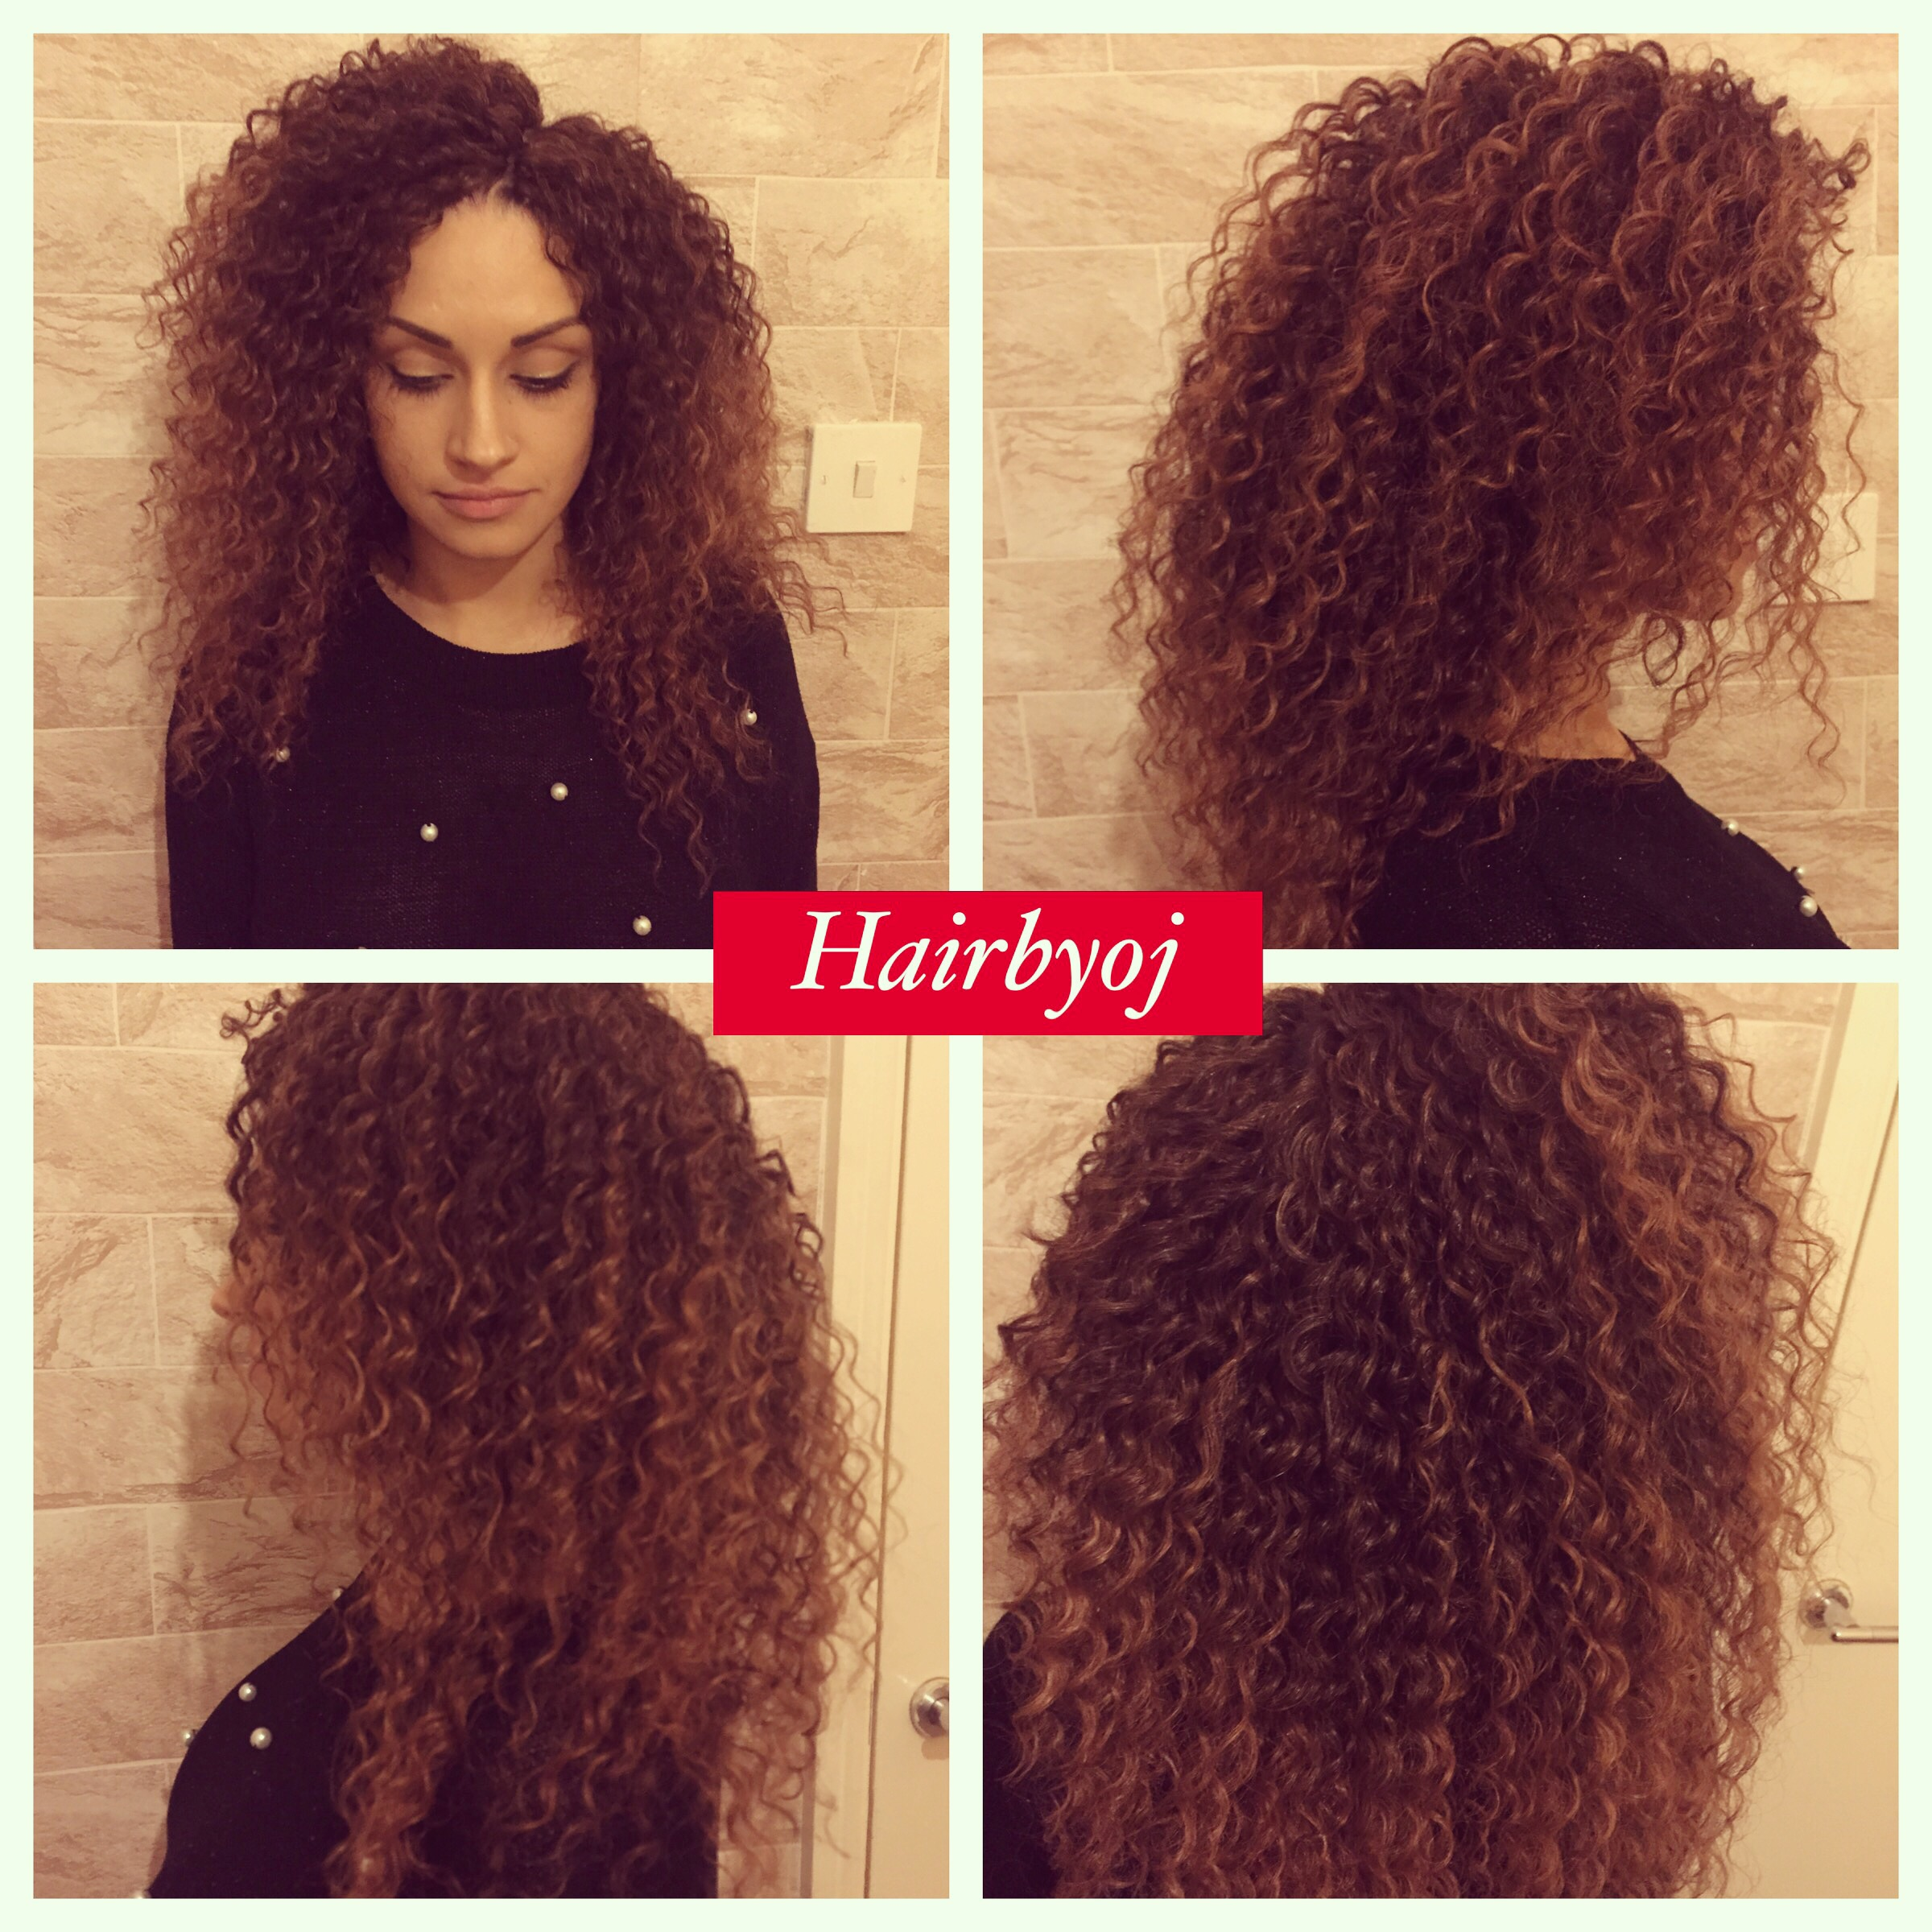 Crochet Hair Pre Curled : ... length wavy ombrE knotless crochet braids. No leave out ? hairbyoj